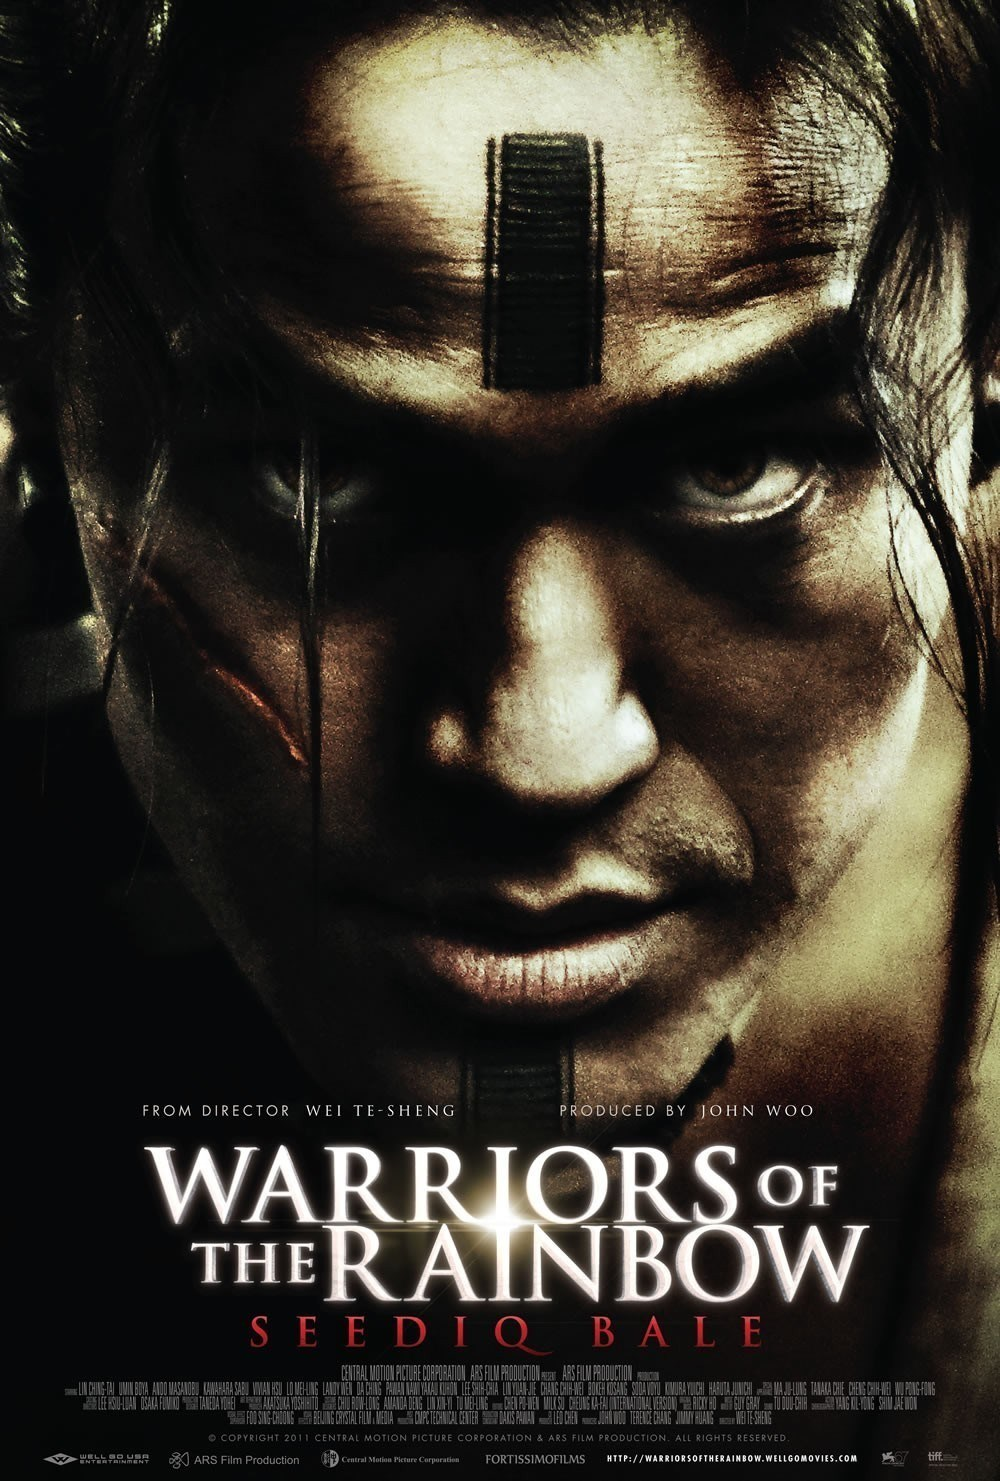 Watch Movie Warriors of the Rainbow Seediq Bale Part 1